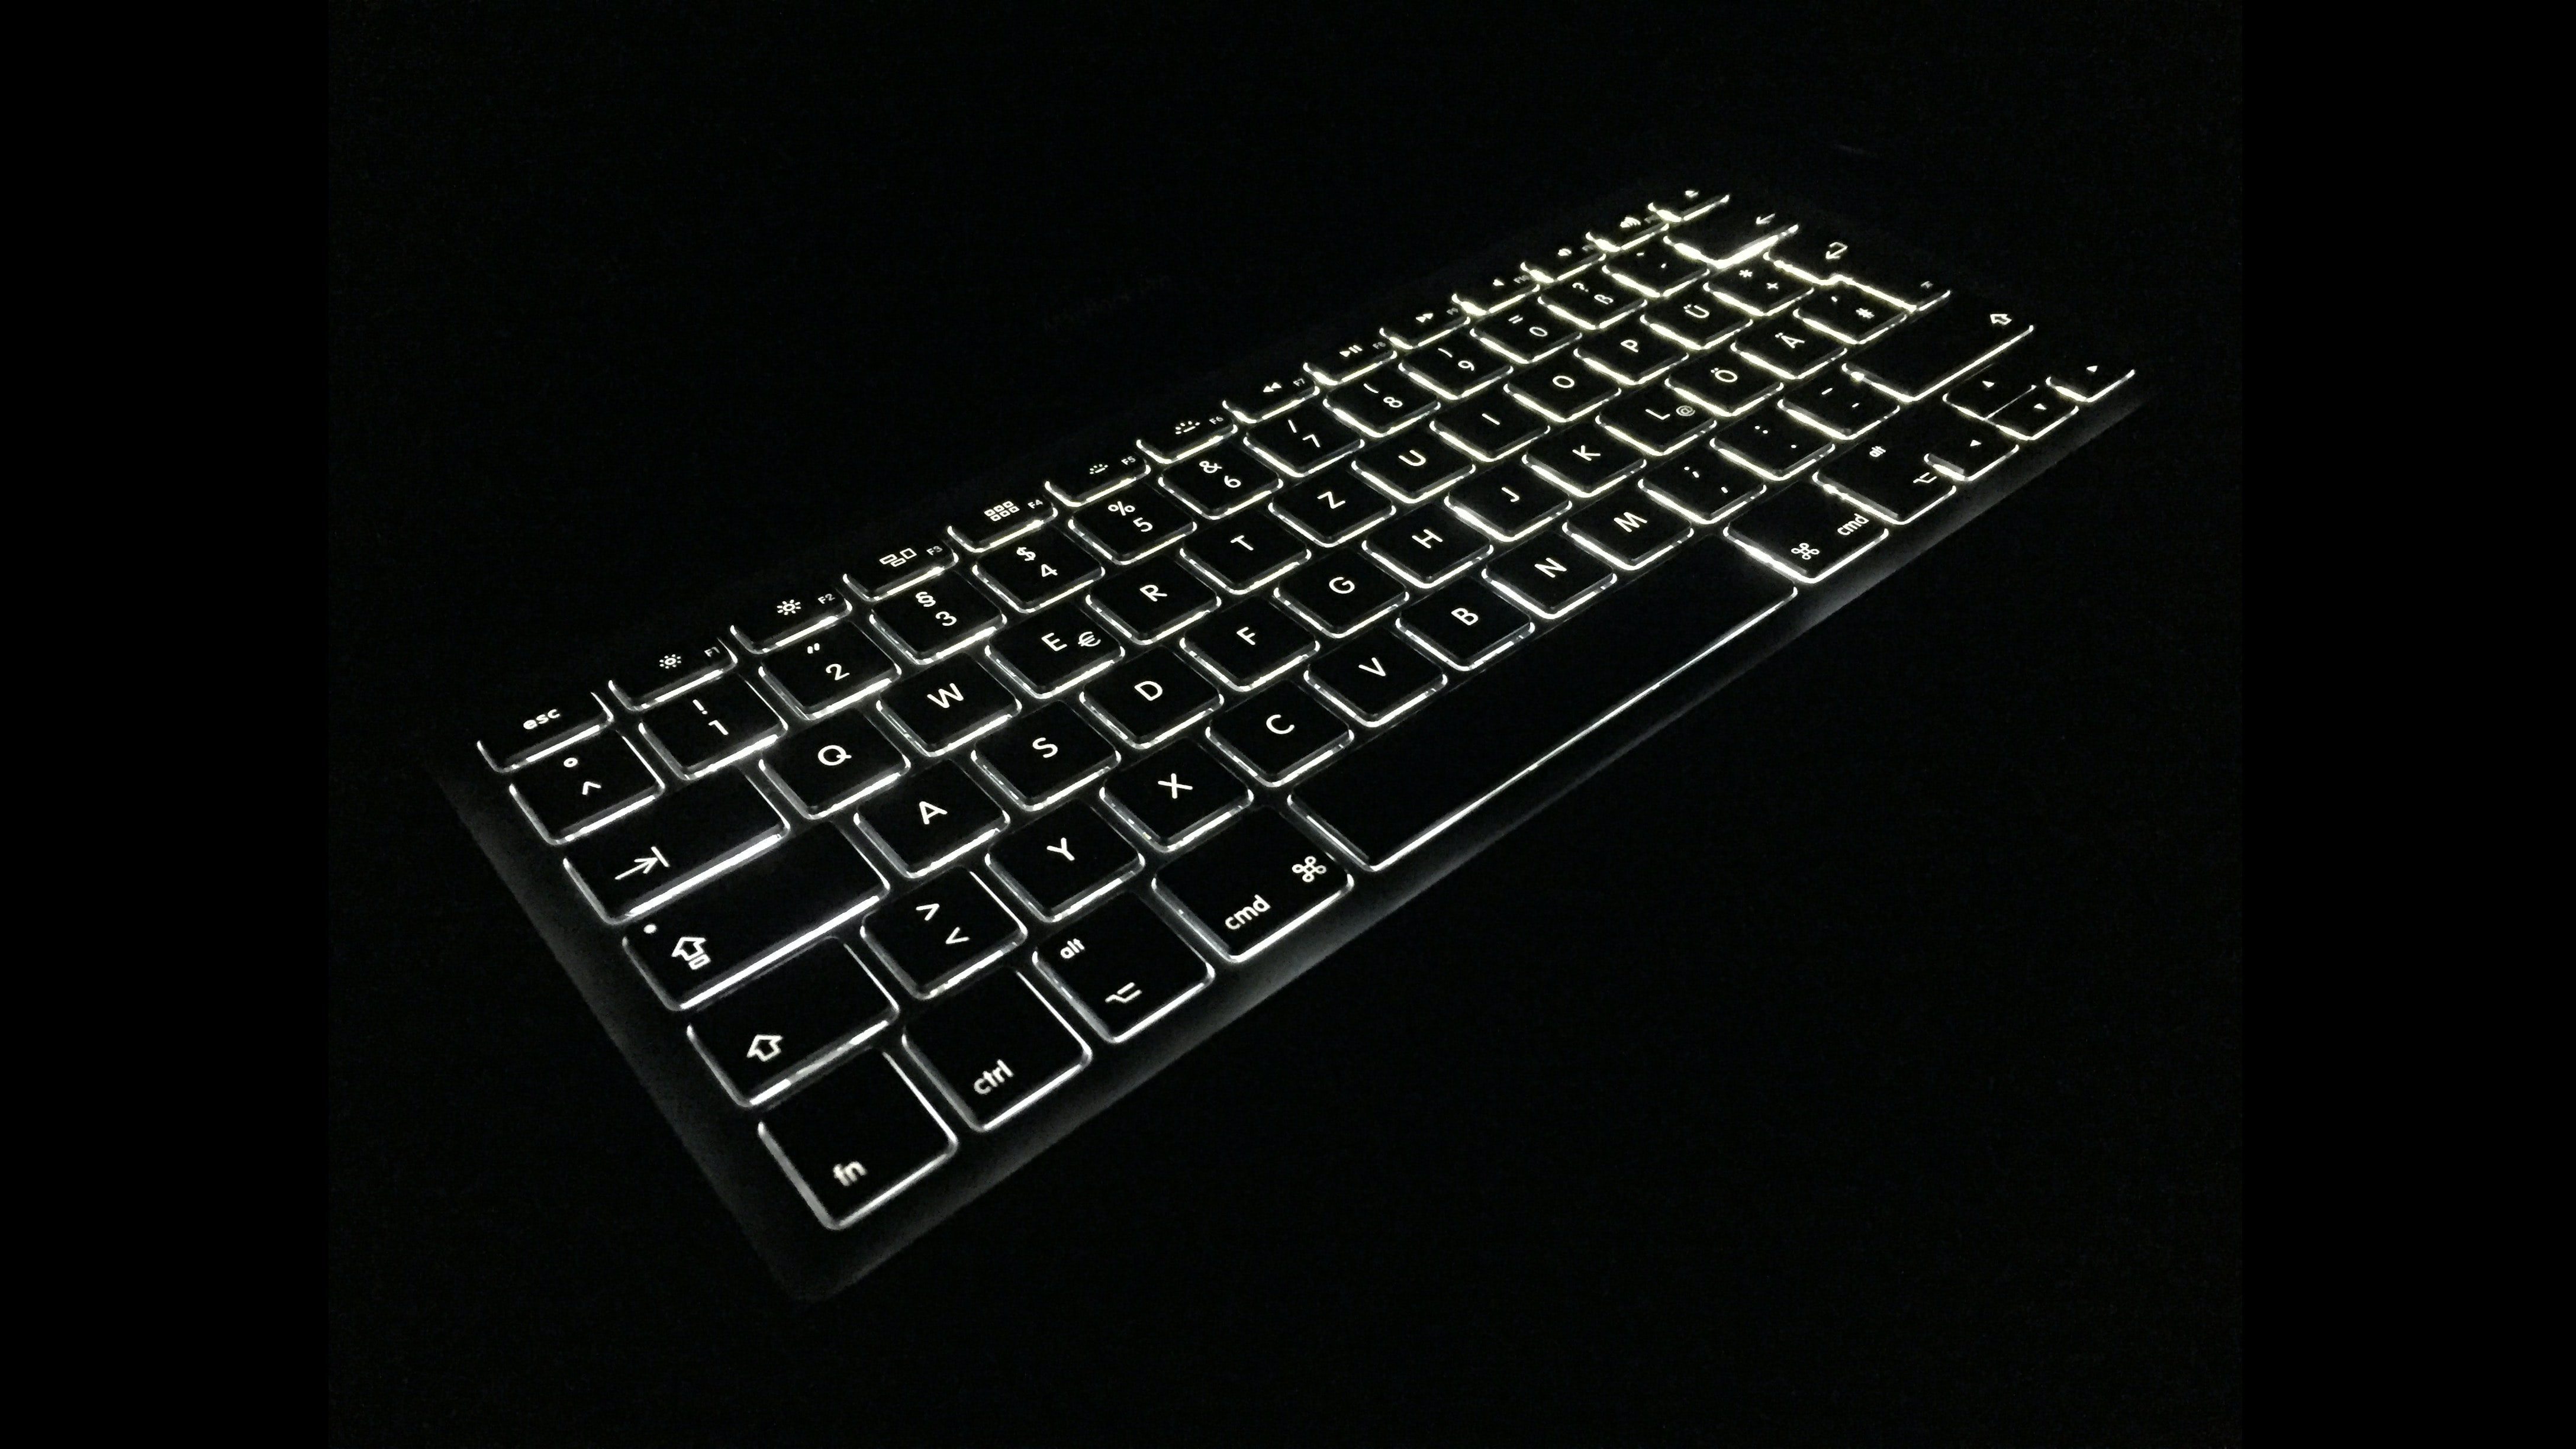 black and white lighted keyboard